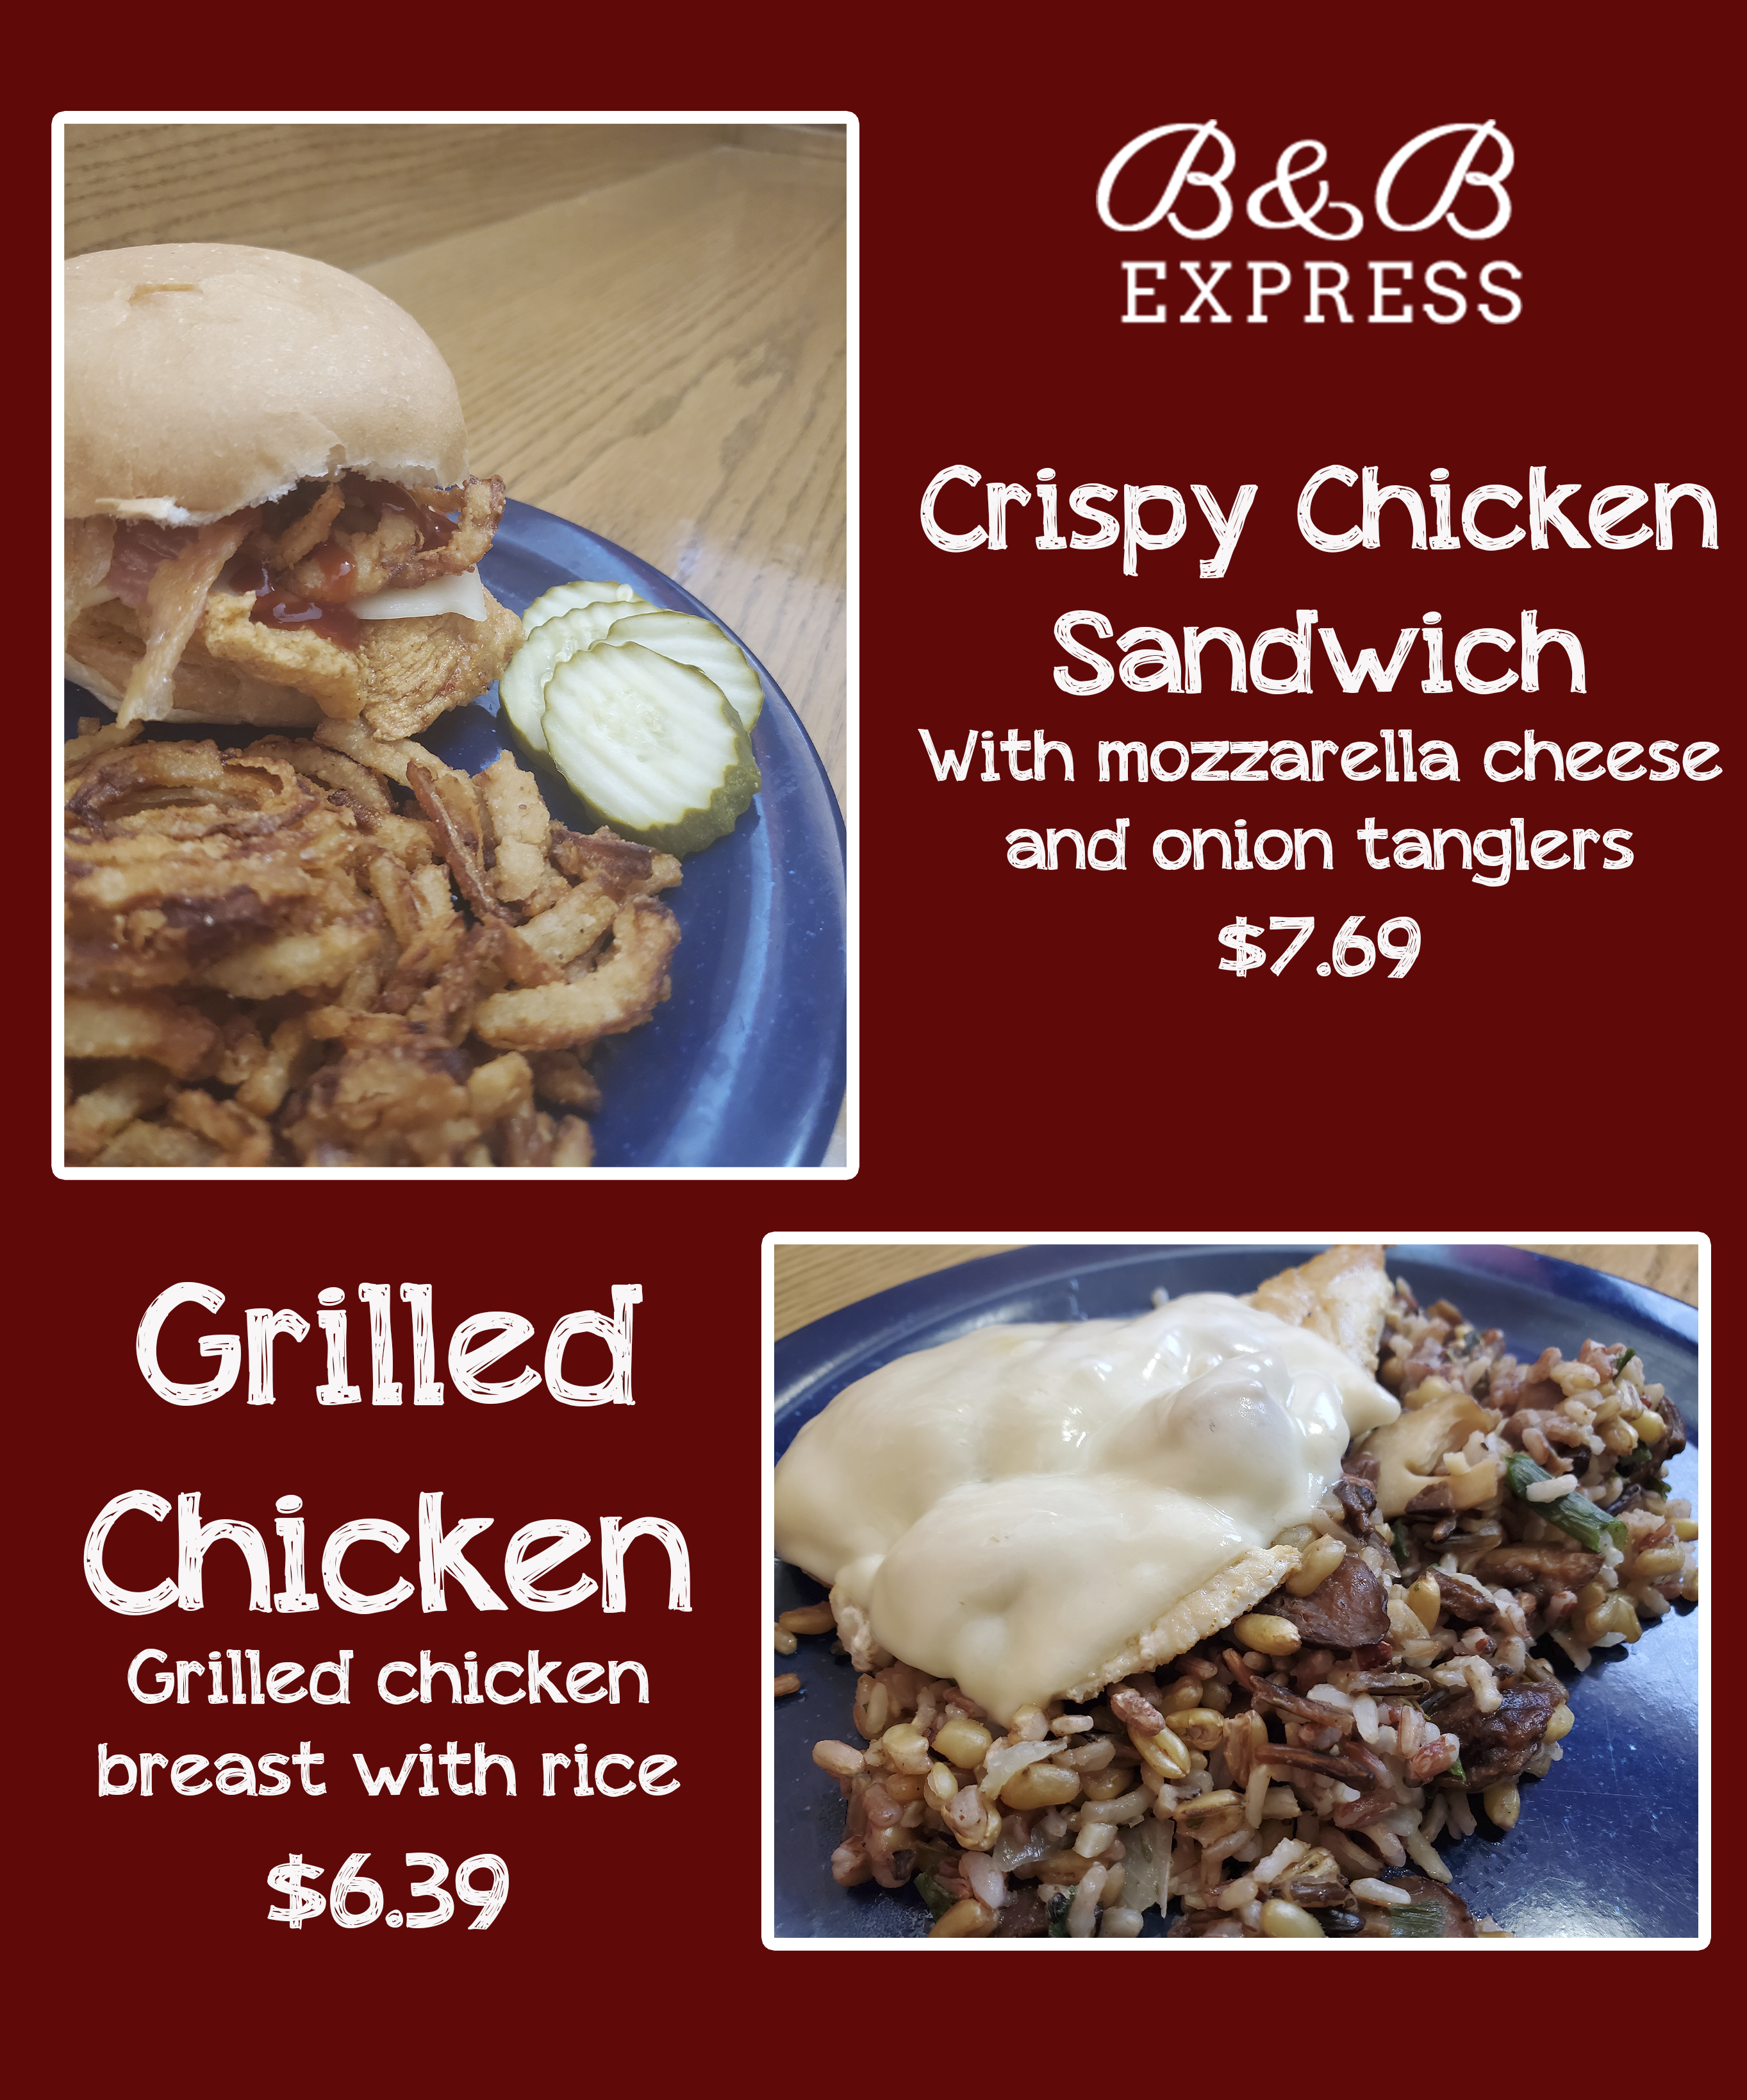 Crispy Chicken Sandwich - With mozzarella cheese and onion tanglers $7.69 Grilled Chicken - Grilled chicken breast with rice $6.39